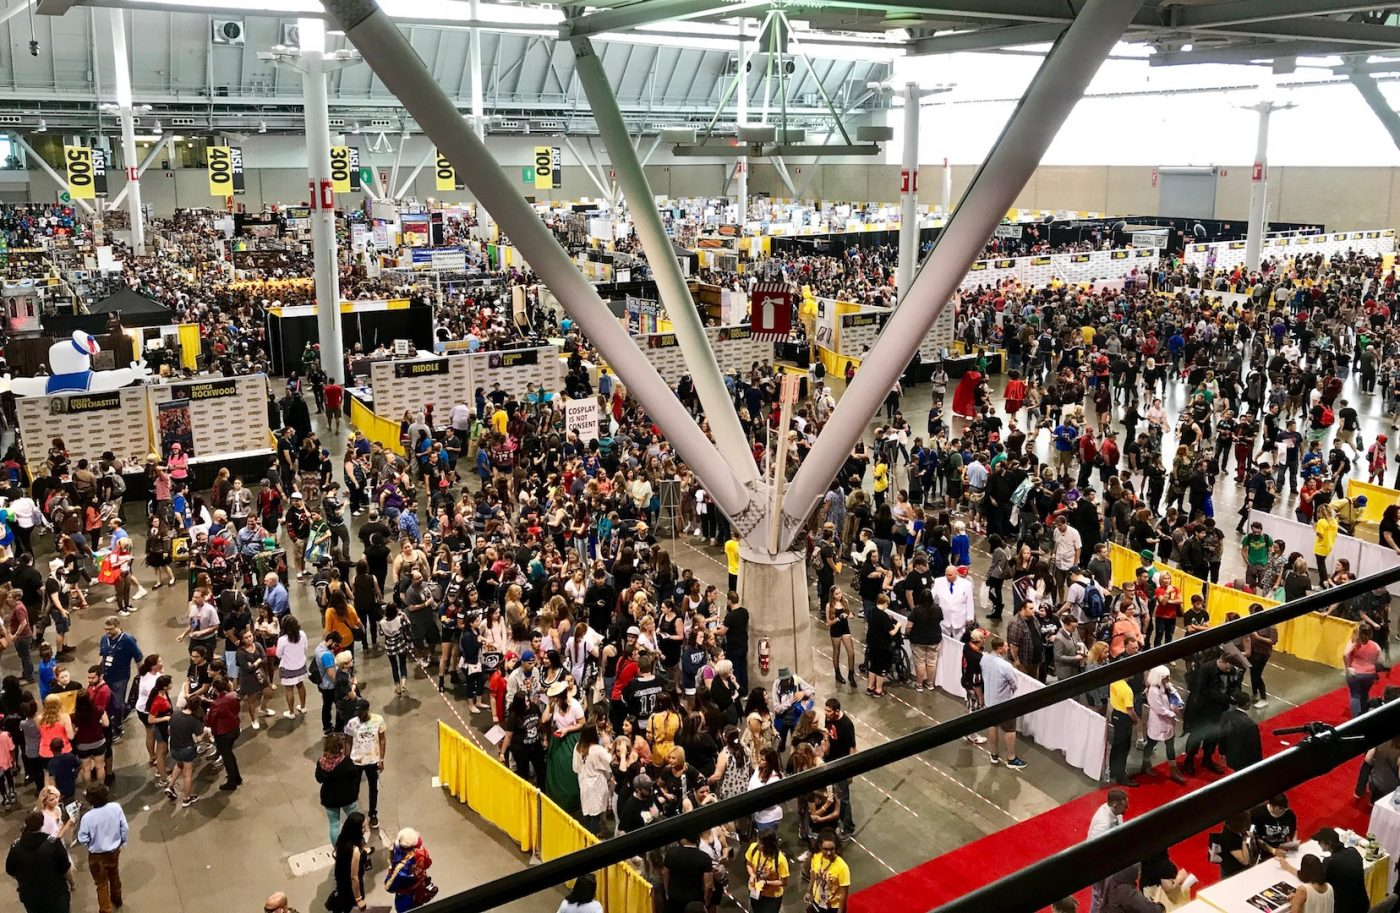 4 members of the AiPT! staff attended Boston Comic Con 2017 - here are their thoughts.